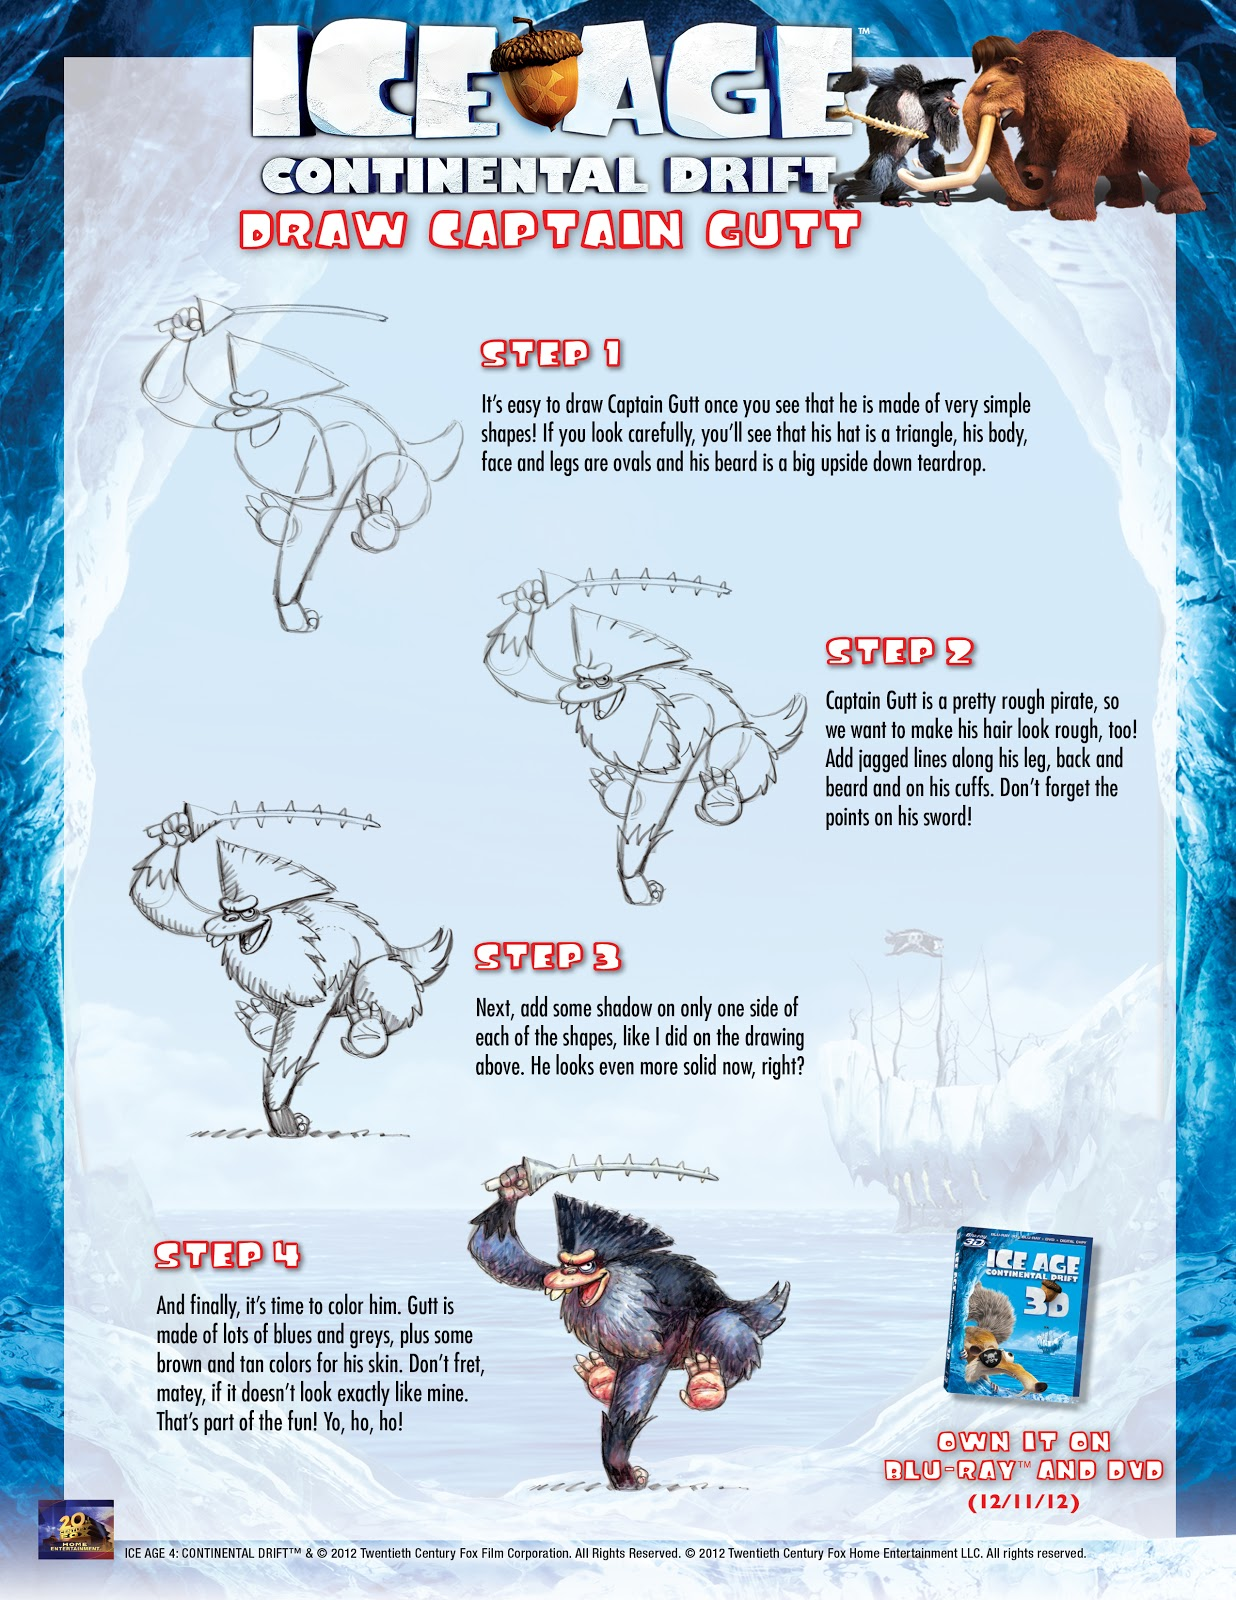 Free Ice Age Continental Drift Holiday E Card And